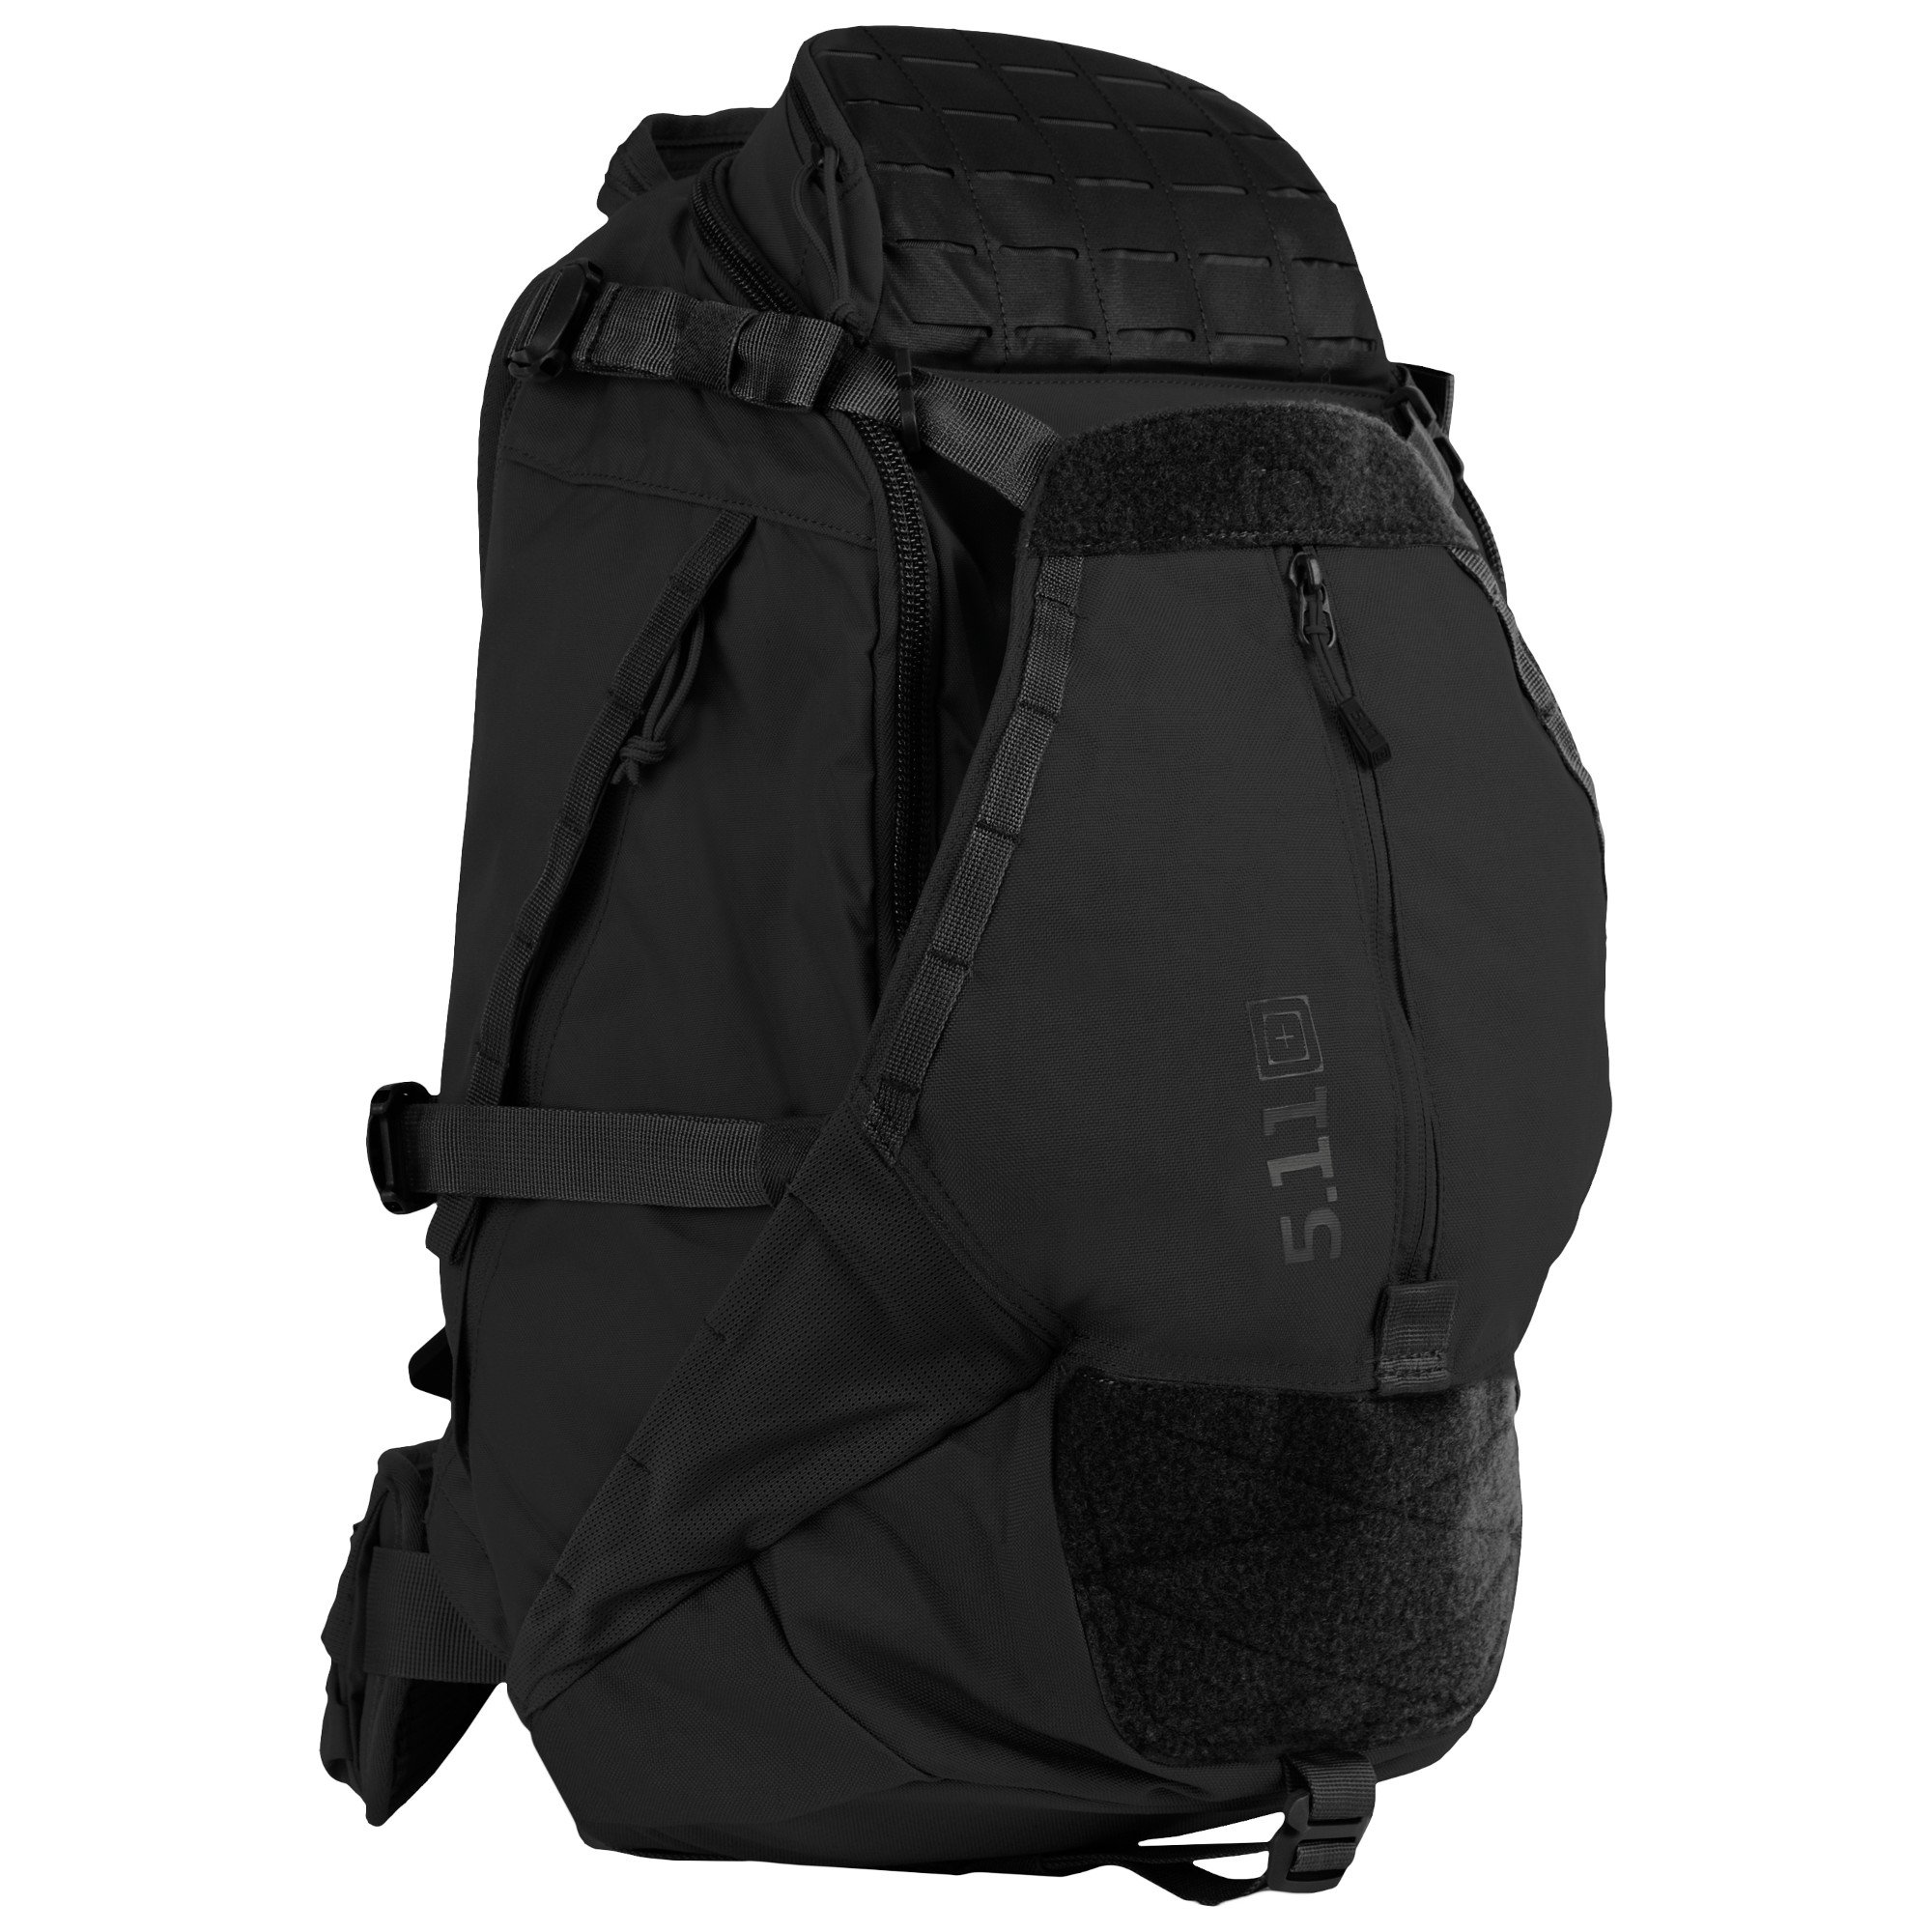 Balo 5.11 Tactical HAVOC 30 25L – Black